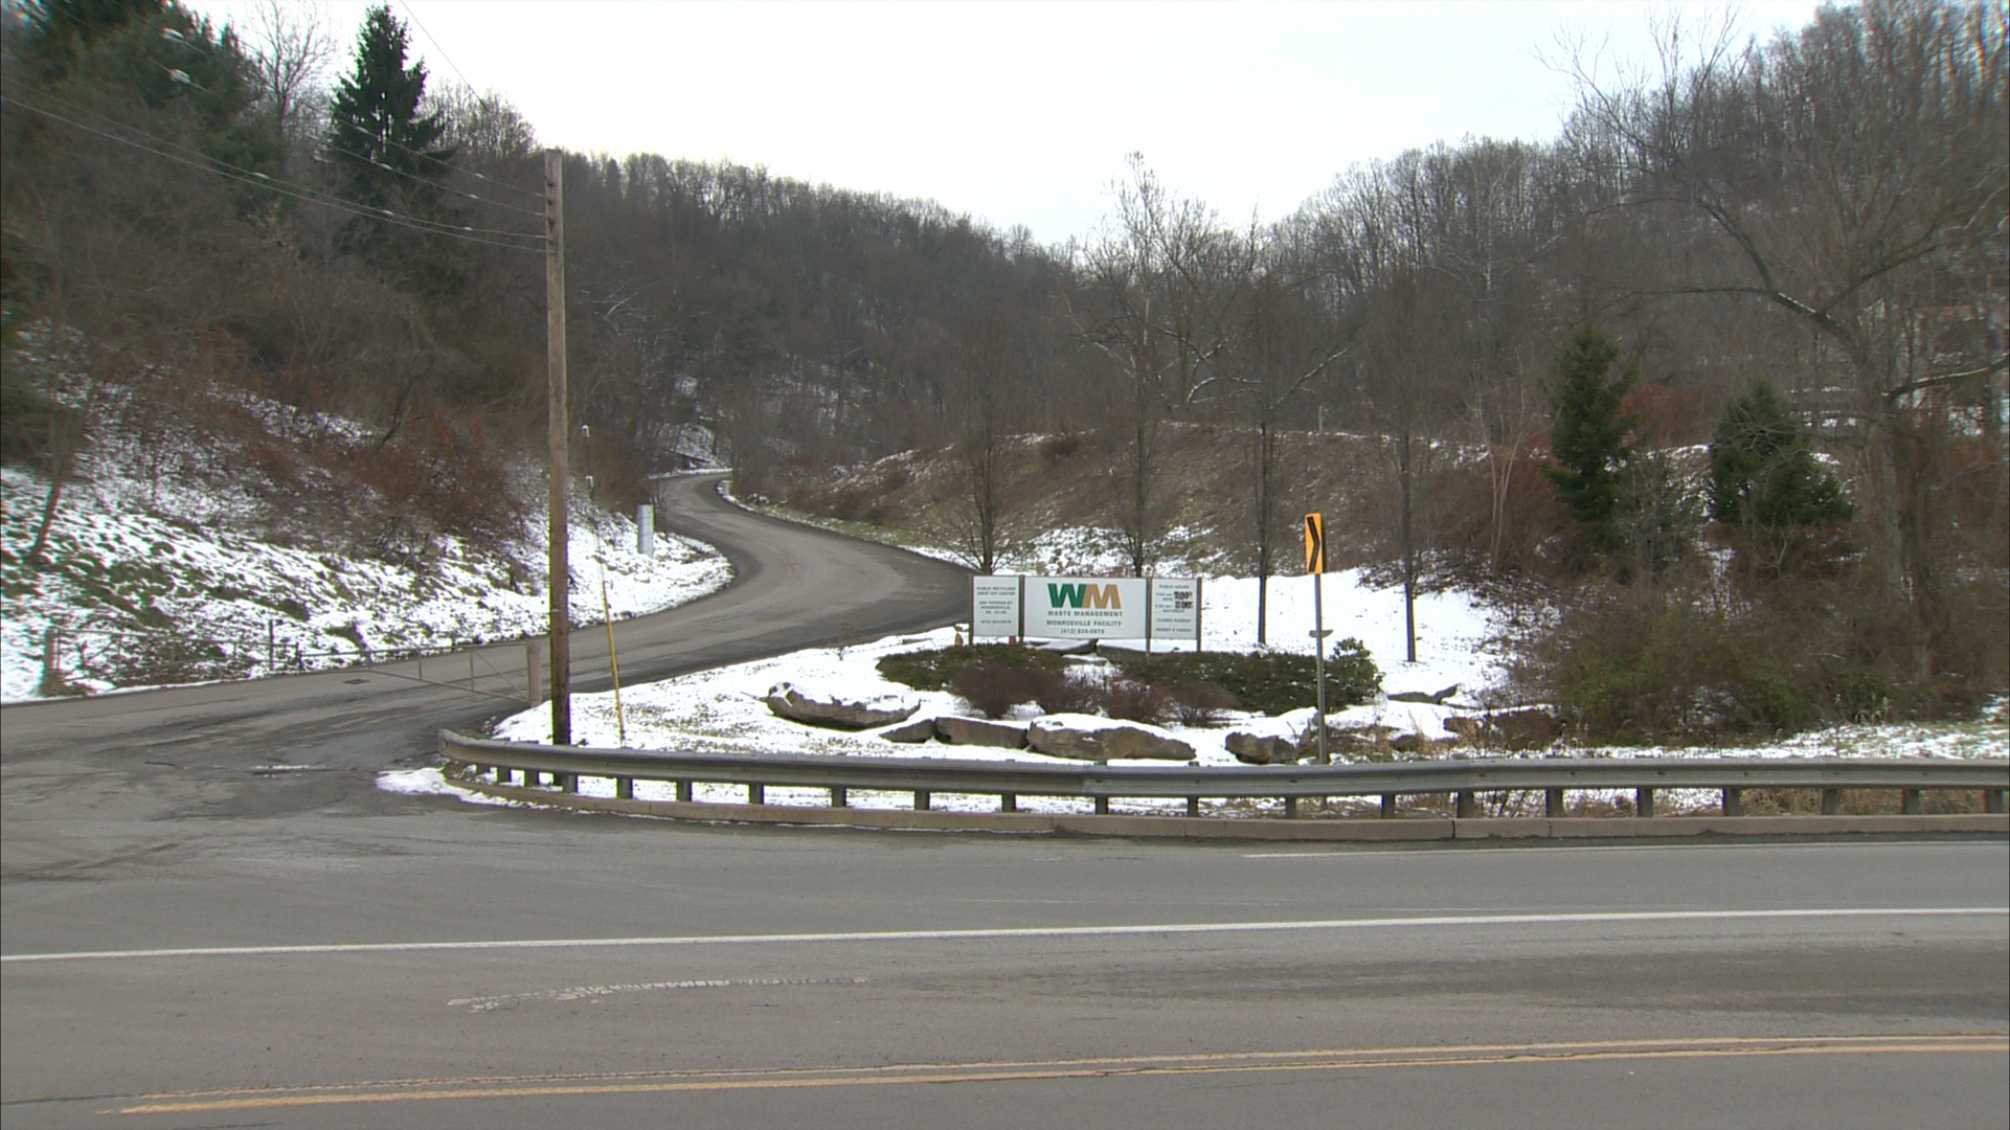 A landfill on Thomas Street in Monroeville.